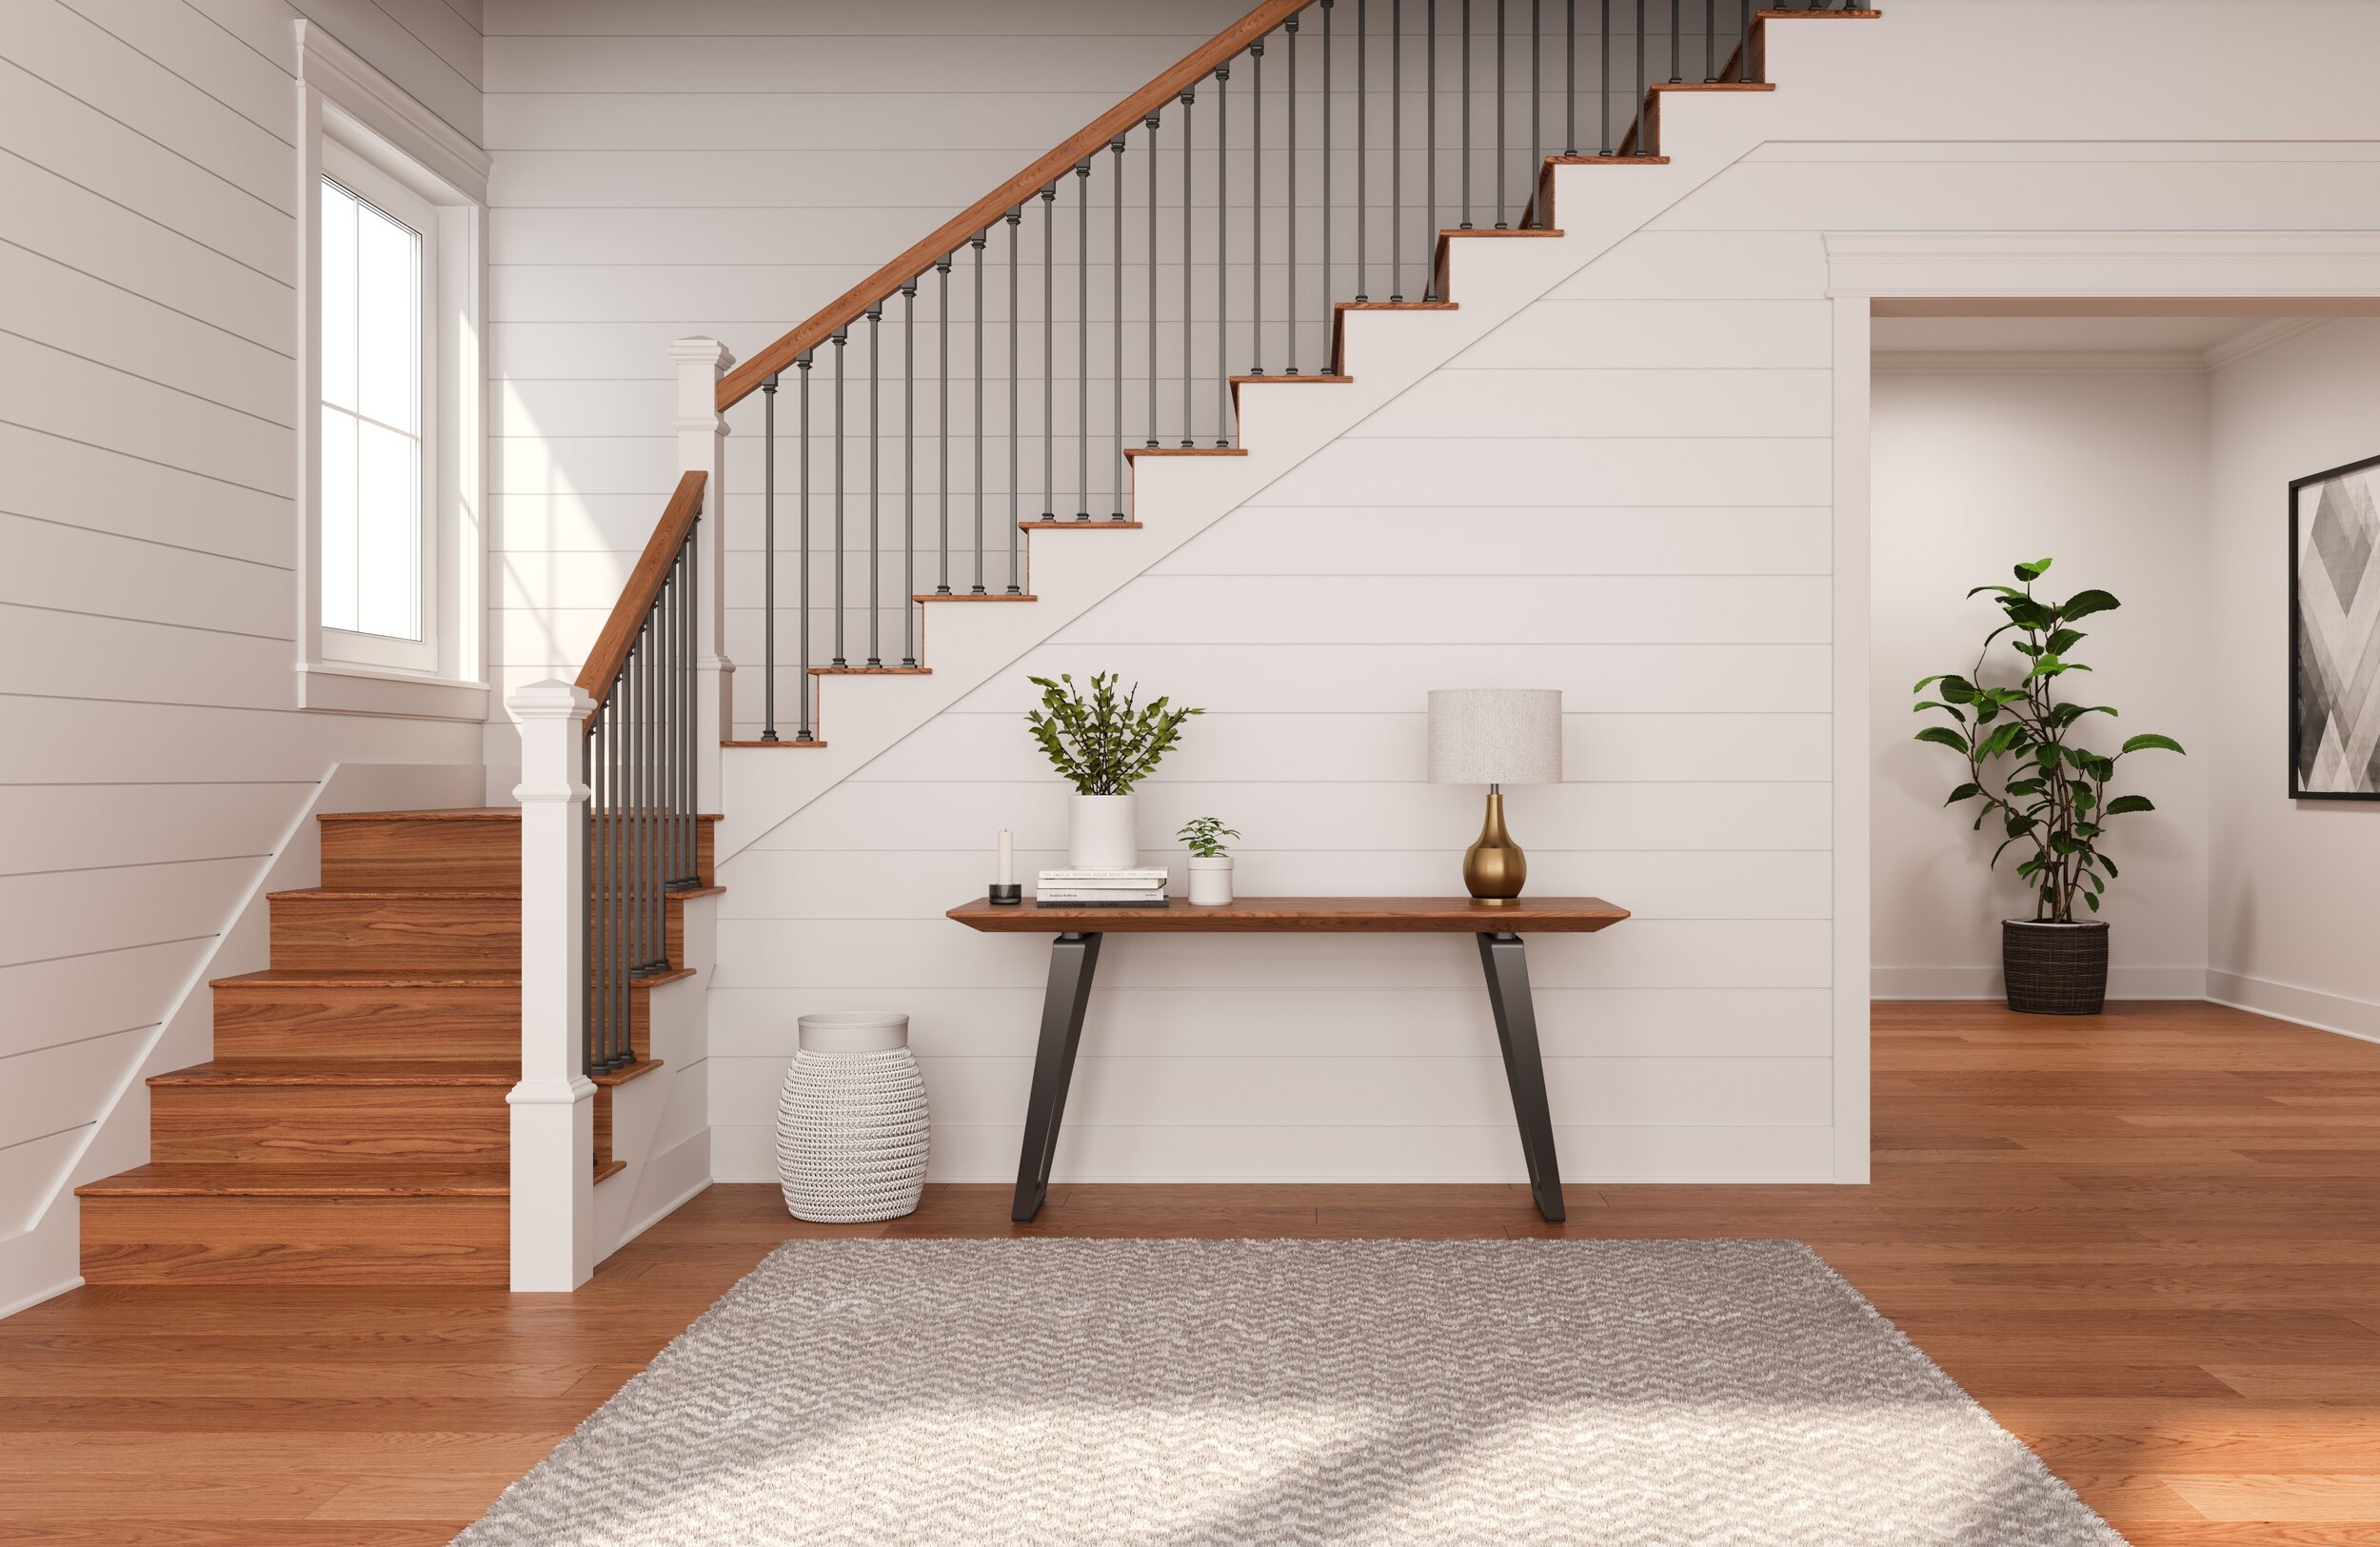 Reversible Stair Risers Ideal Diy Project — Ornamental Decorative   Stained Stairs And Risers   Two Tone   Natural   Bead Board   Gray Painted   Finished